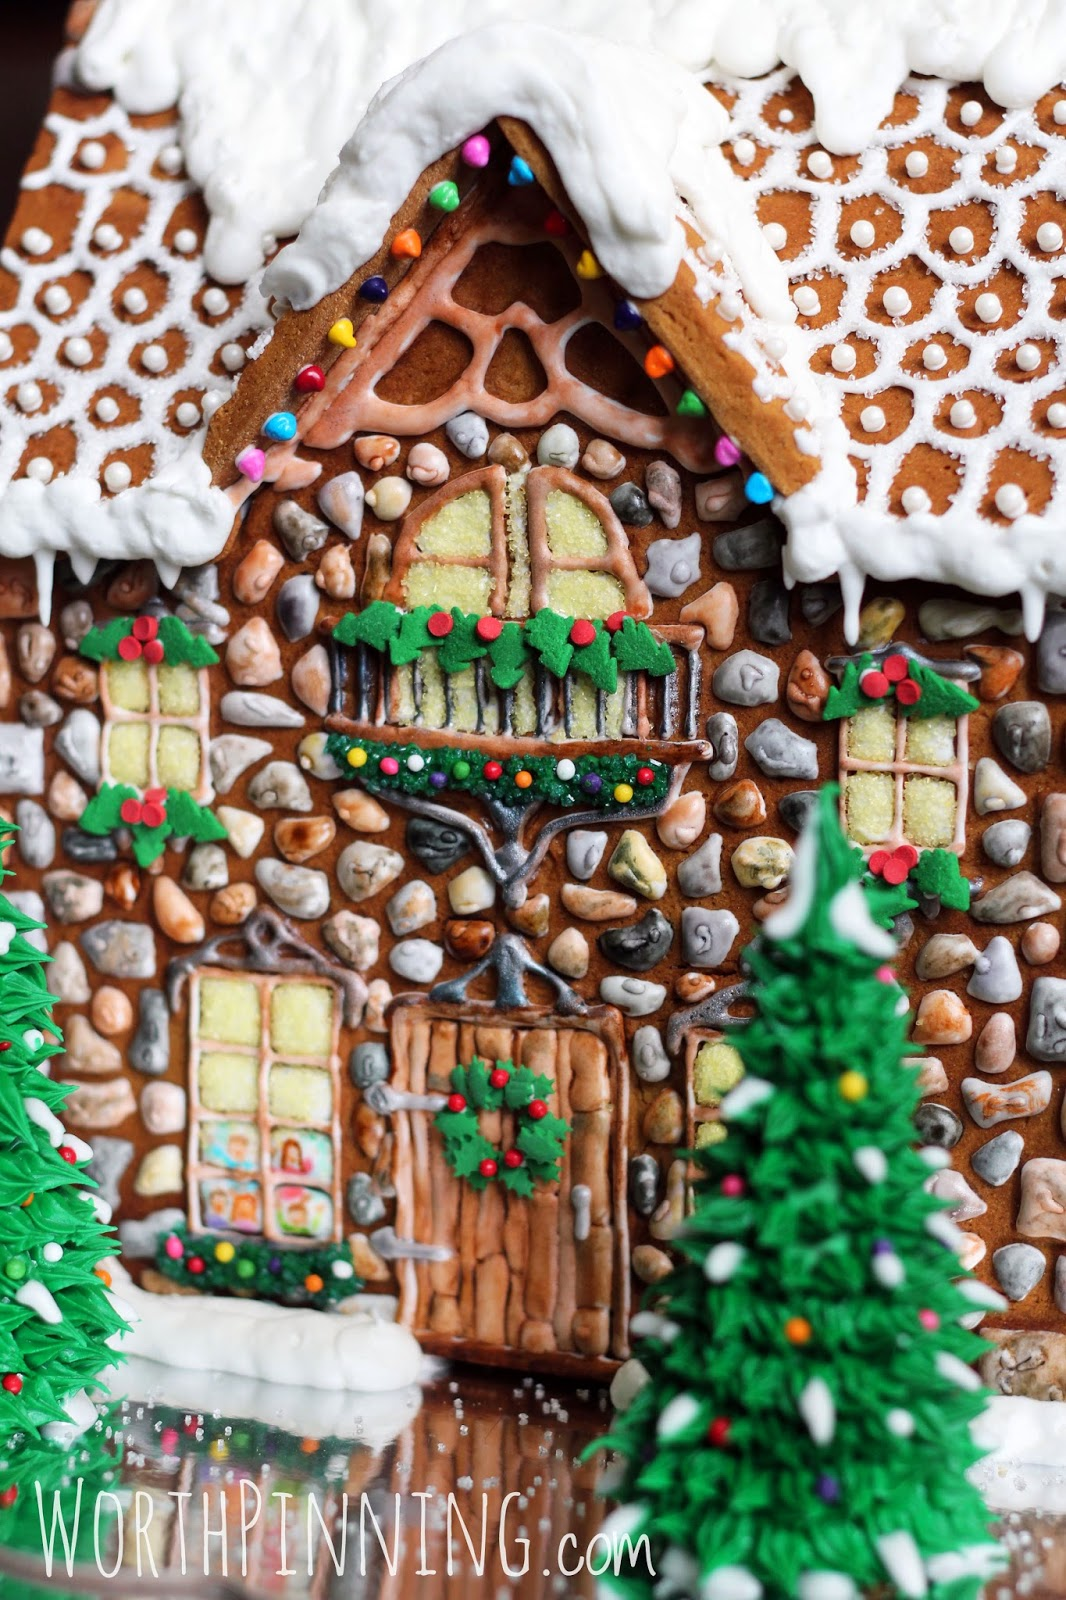 Tremendous Worth Pinning Stone Gingerbread House Largest Home Design Picture Inspirations Pitcheantrous